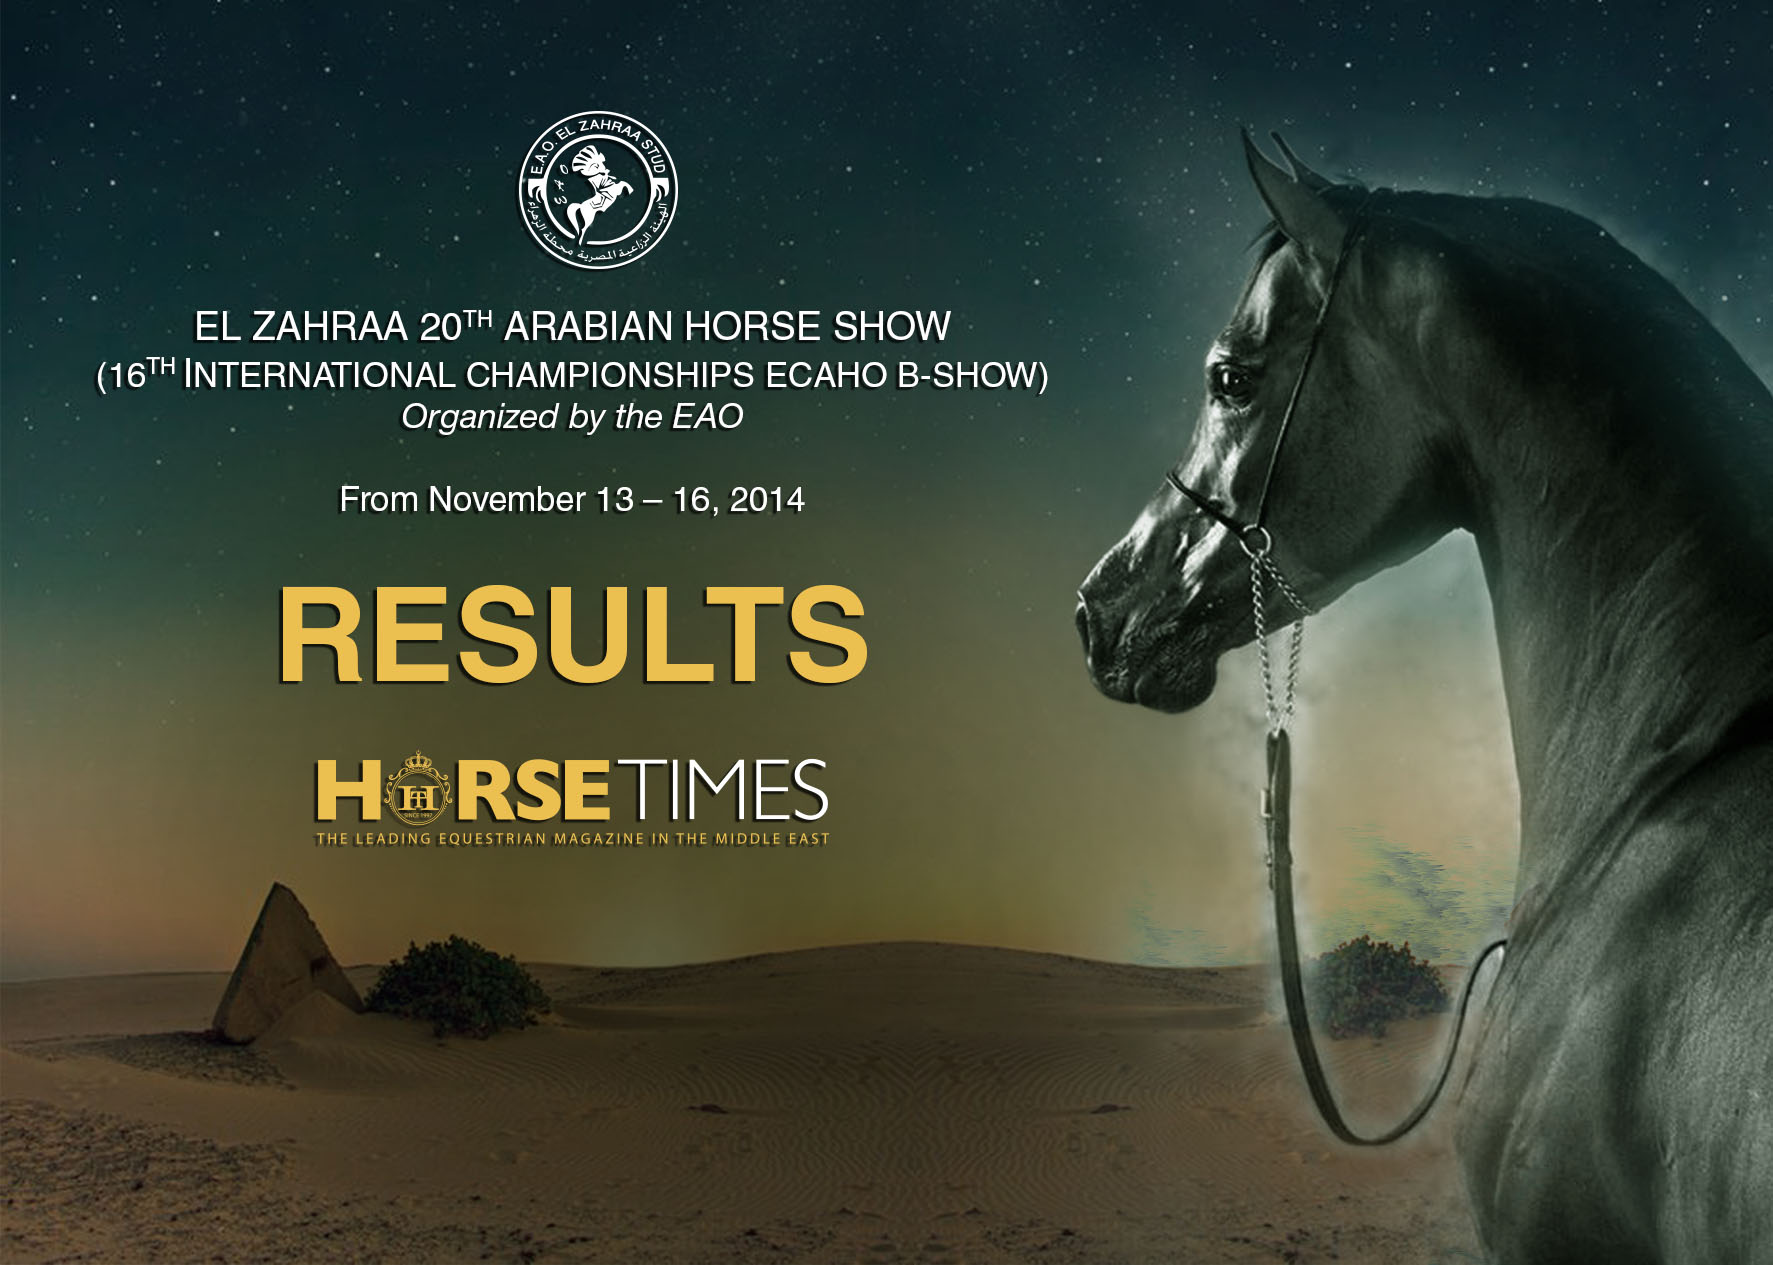 Horse Times Egypt: Equestrian Magazine :News :EL ZAHRAA 20TH ARABIAN HORSE CHAMPIONSHIPS - 2014 RESULTS